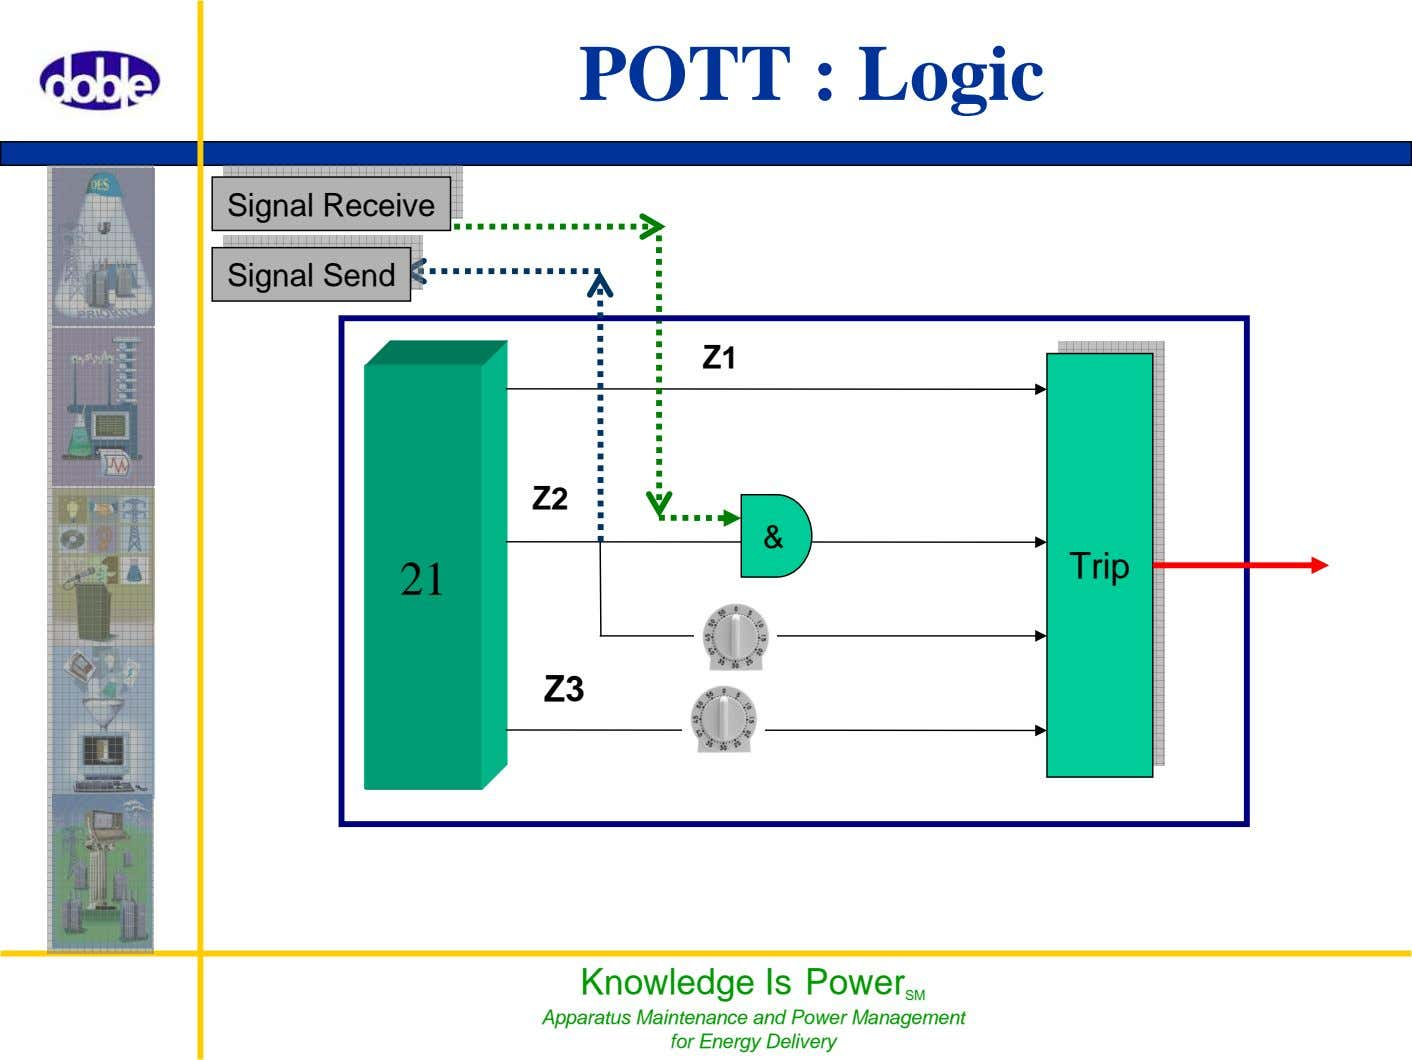 POTT : Logic Signal Signal Receive Receive Z1 Z2 & 21 Z3 Knowledge Is Power